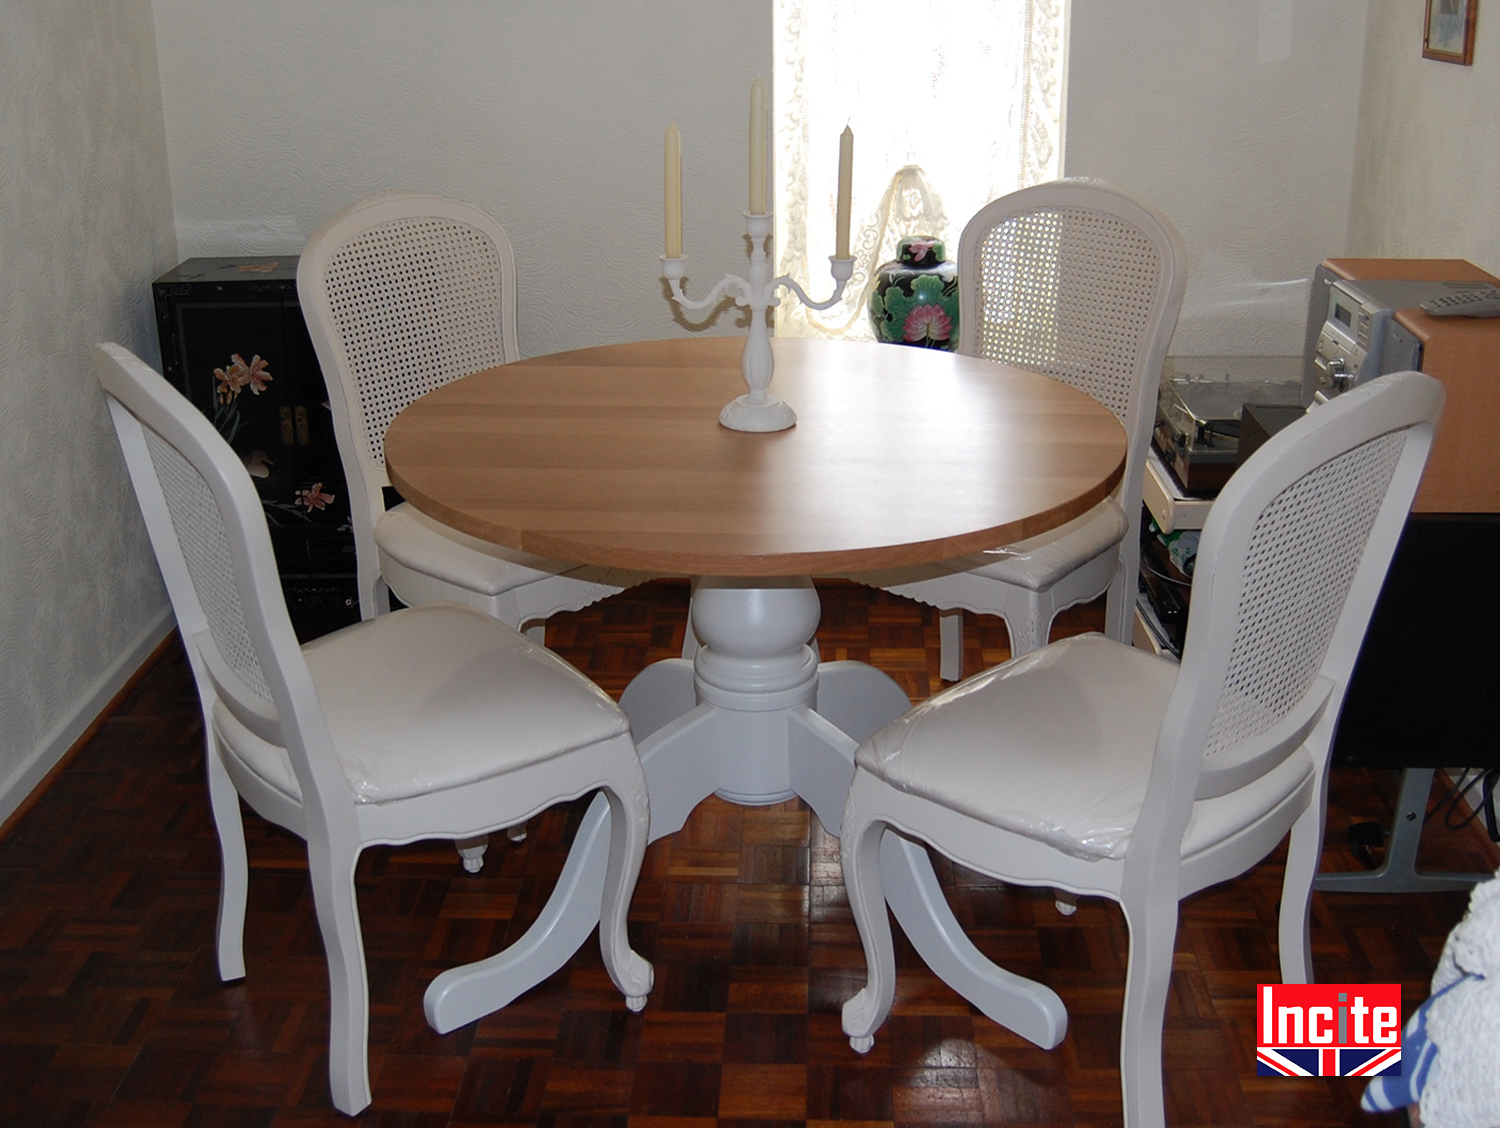 Painted pine and solid oak round table incite interiors for Painted round dining table and chairs